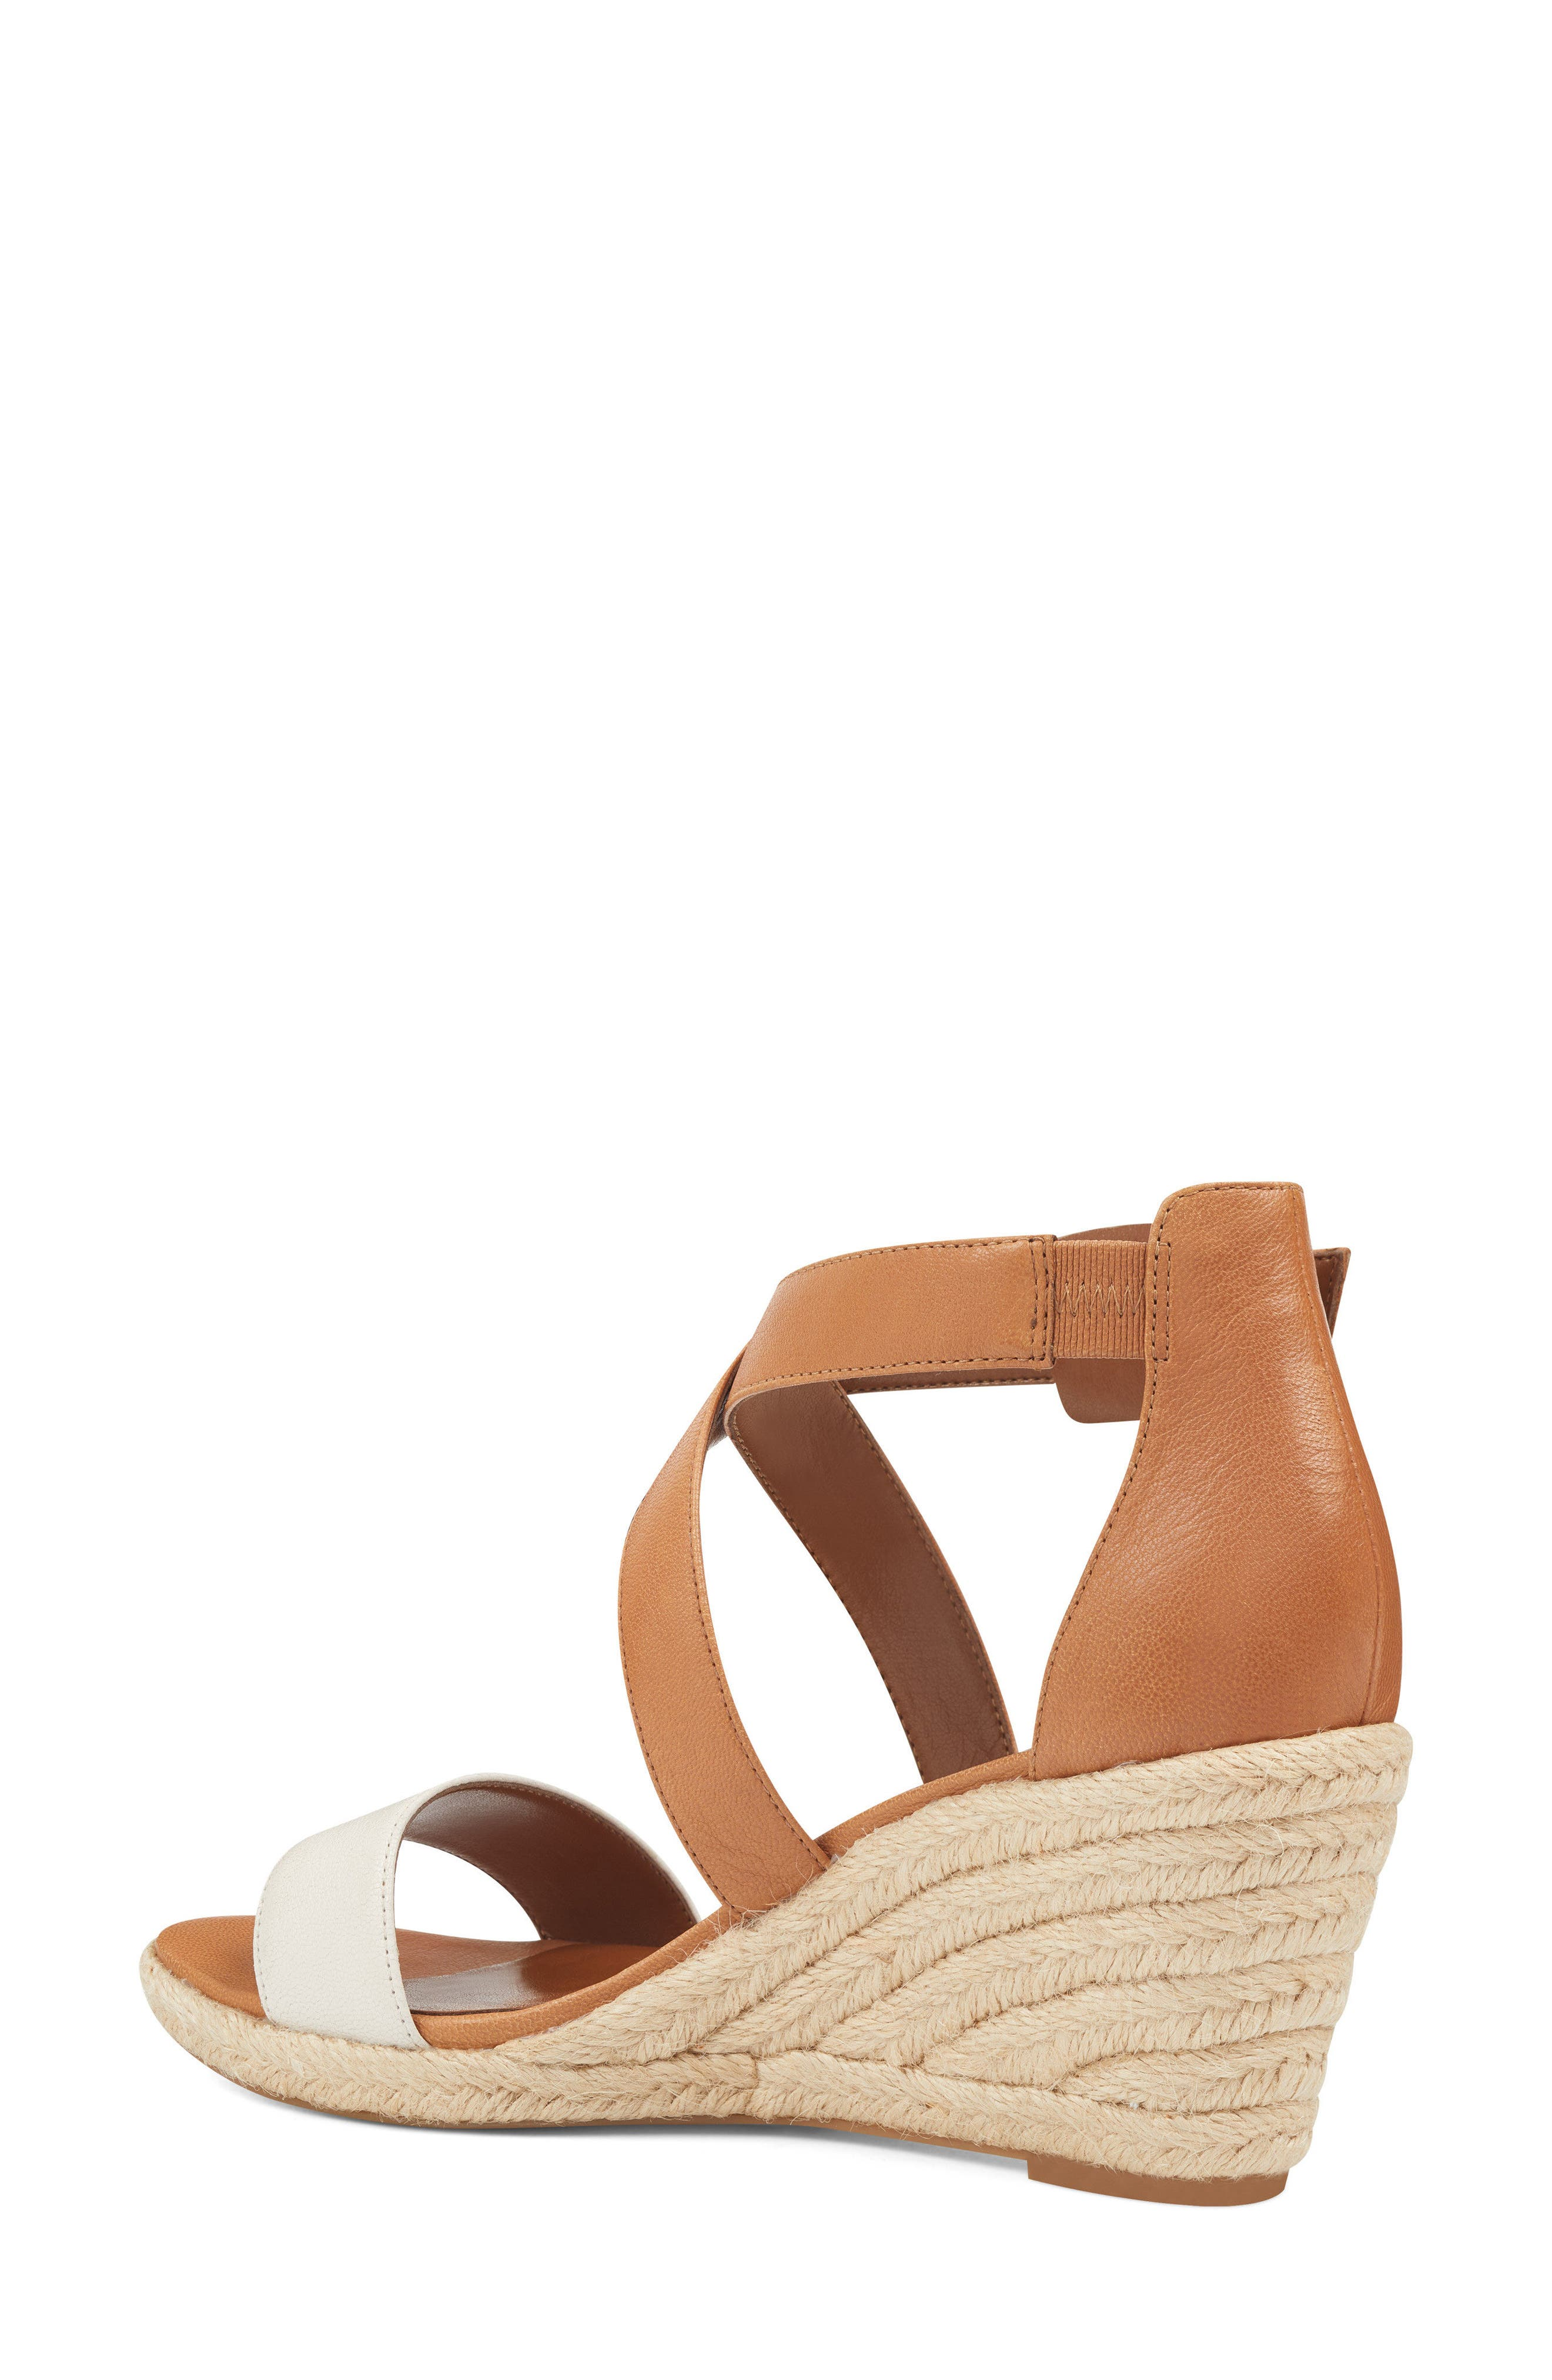 Jorjapeach Espadrille Wedge Sandal,                             Alternate thumbnail 2, color,                             White Leather